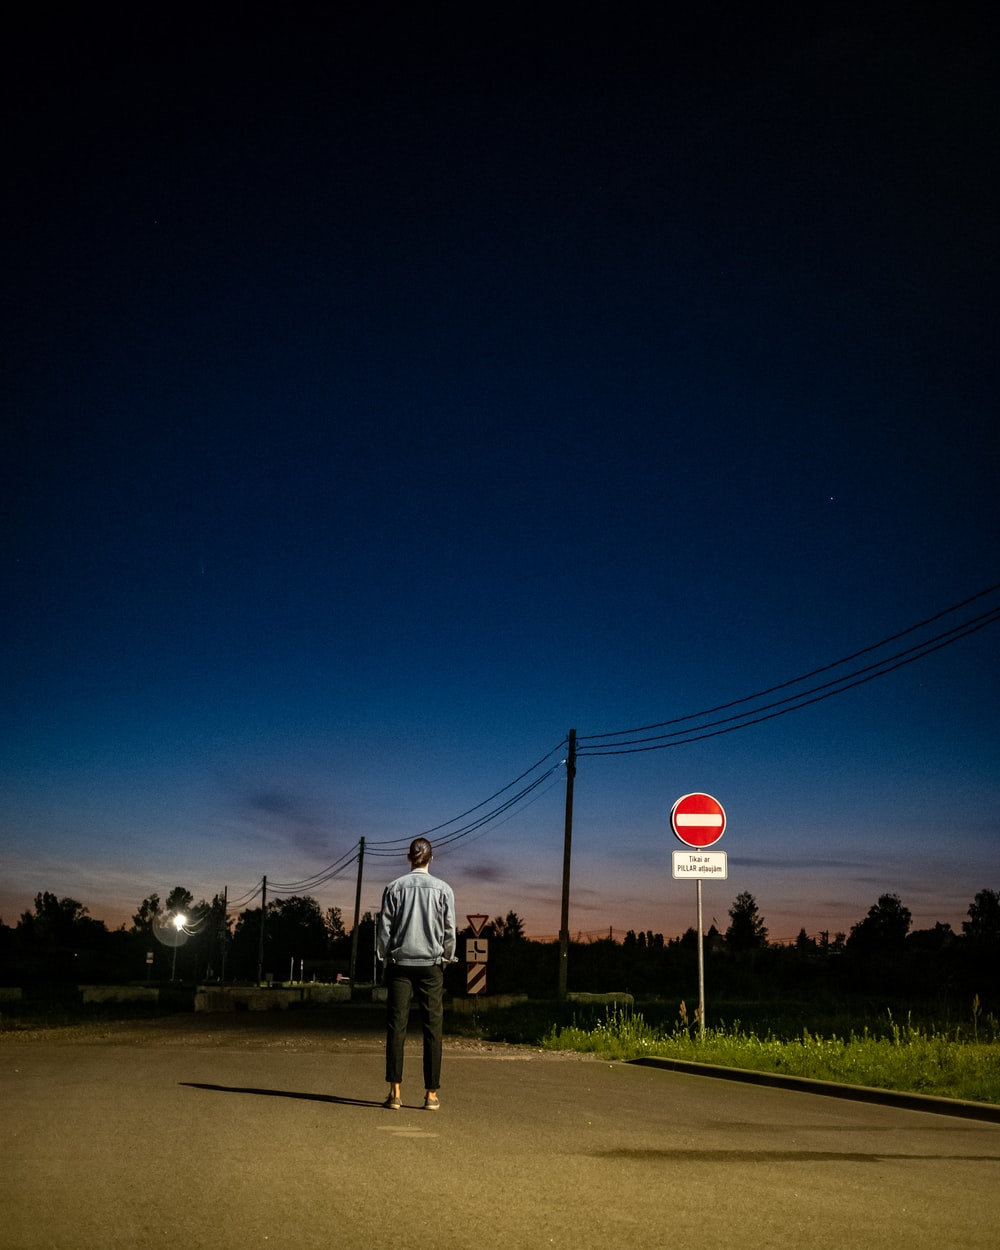 man in white shirt standing on the street during night time